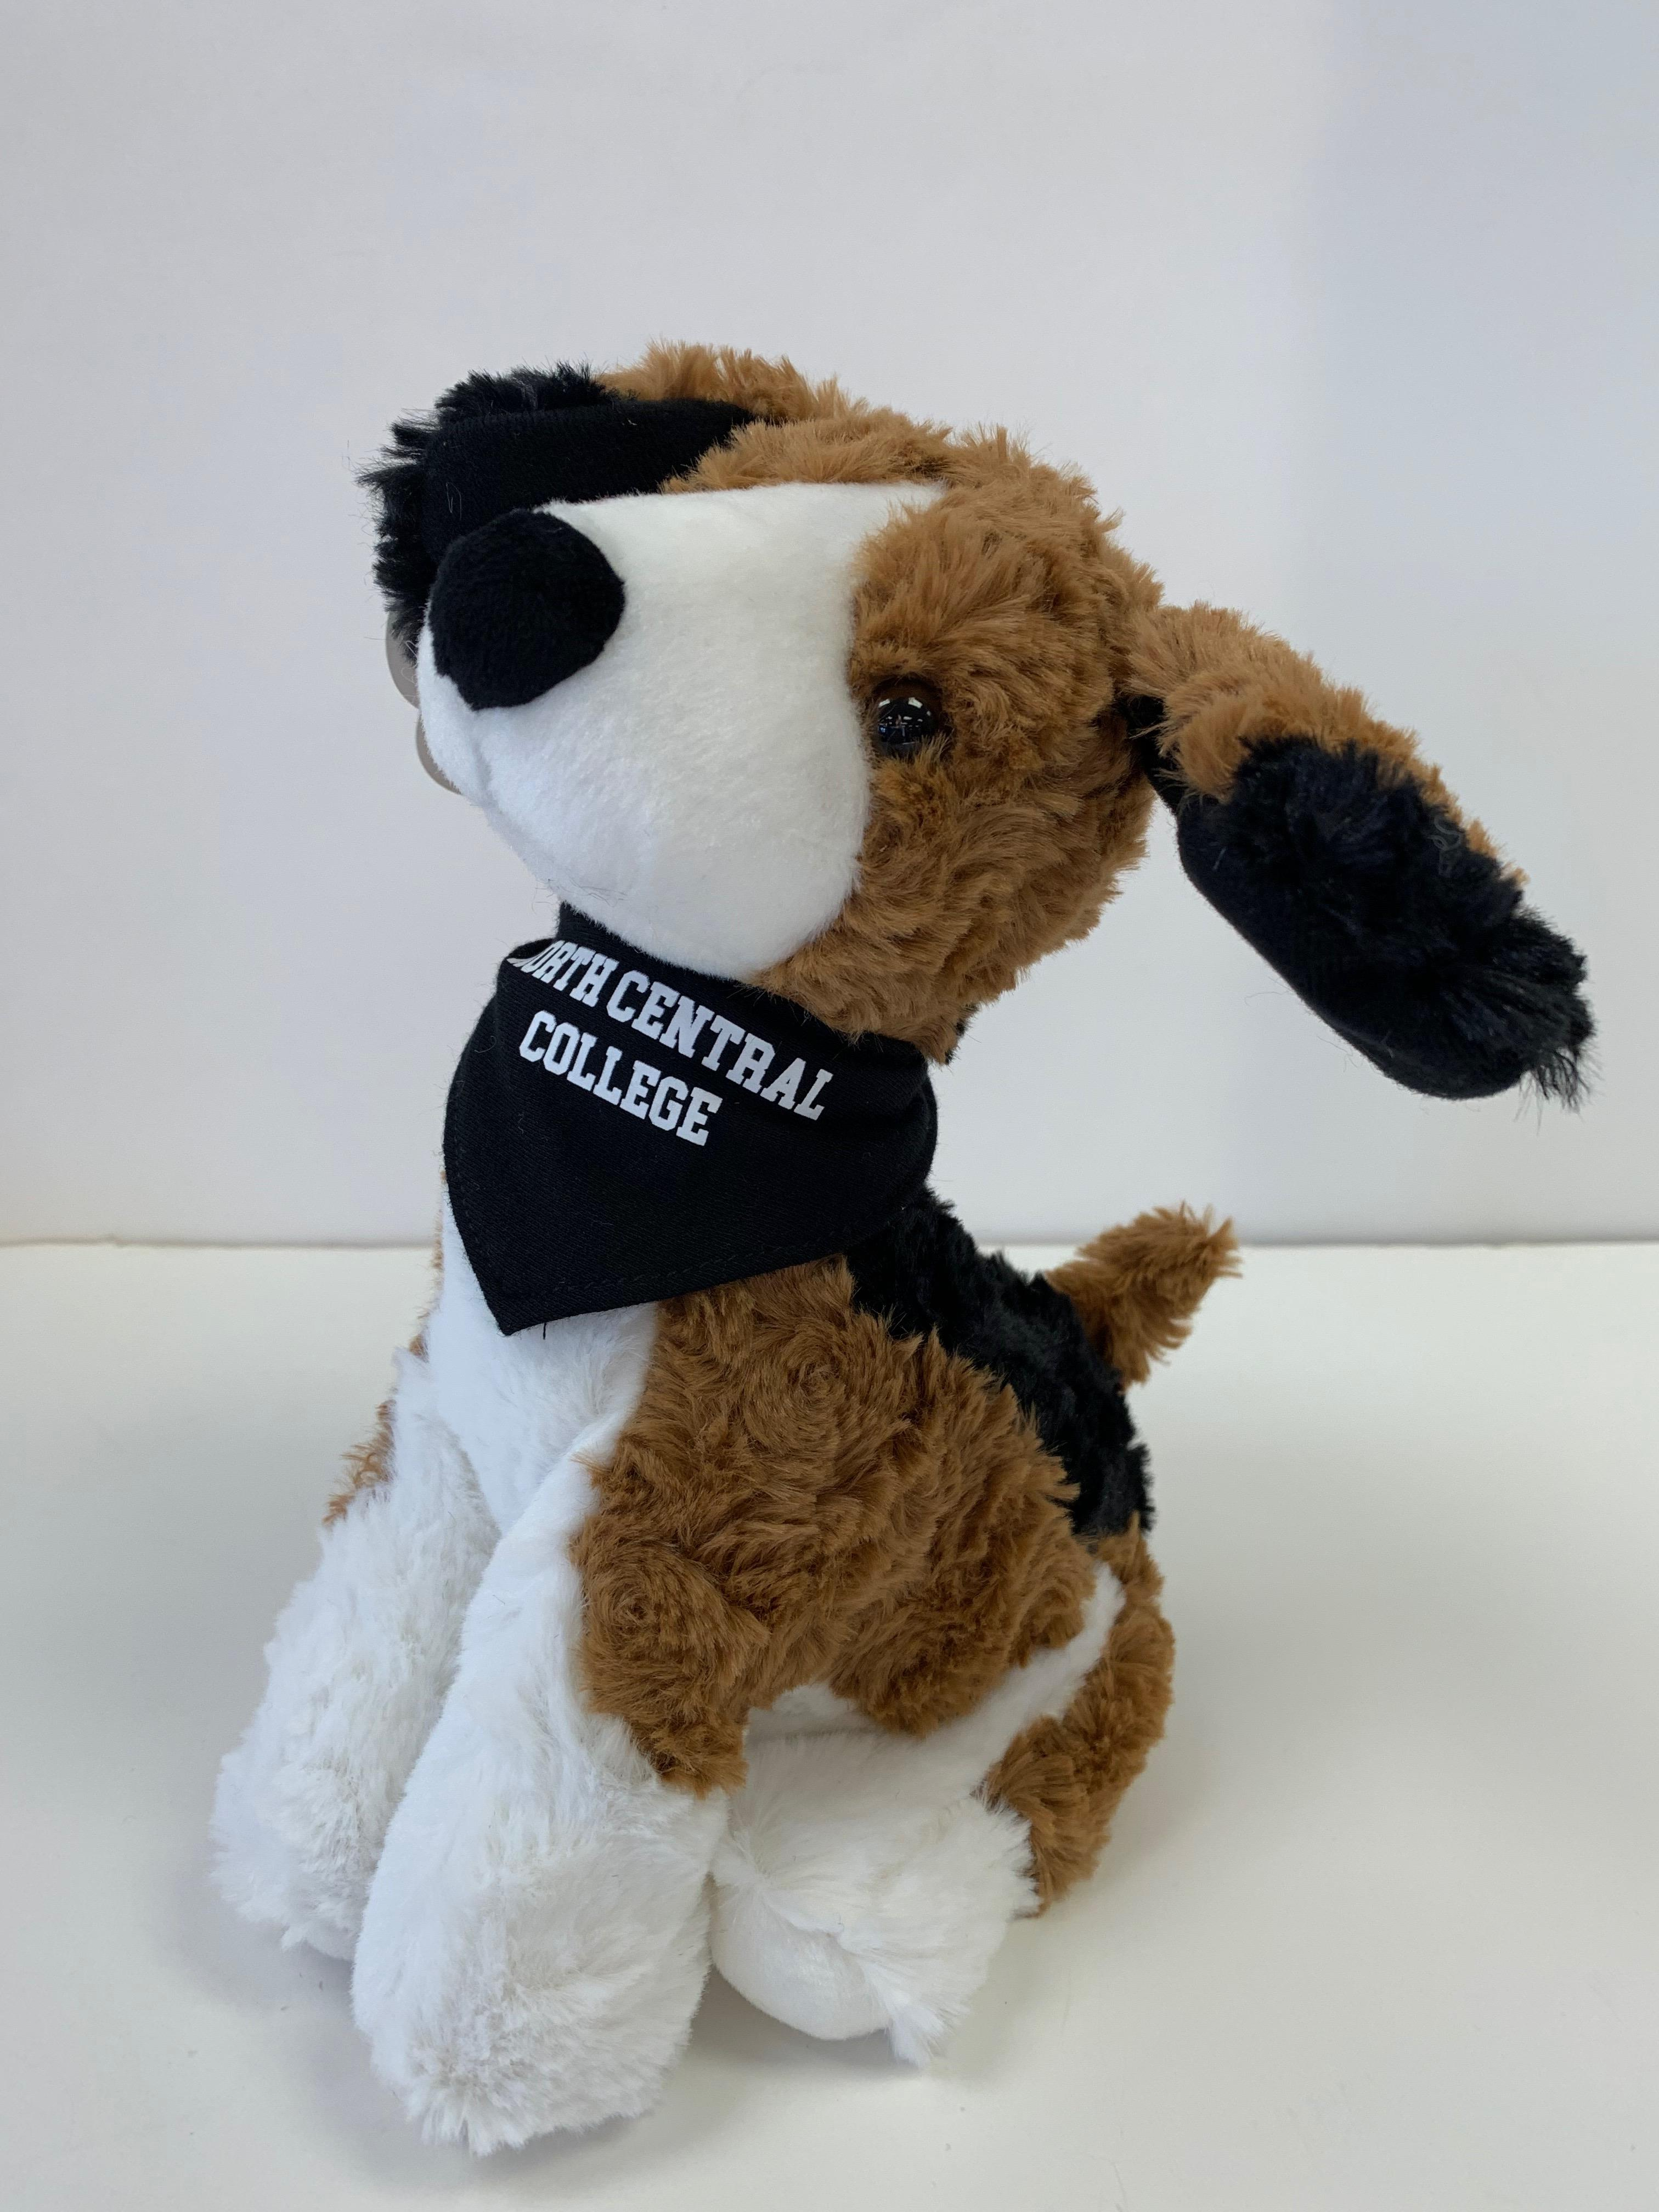 Image for the Mighty Tykes Plush Beagle product